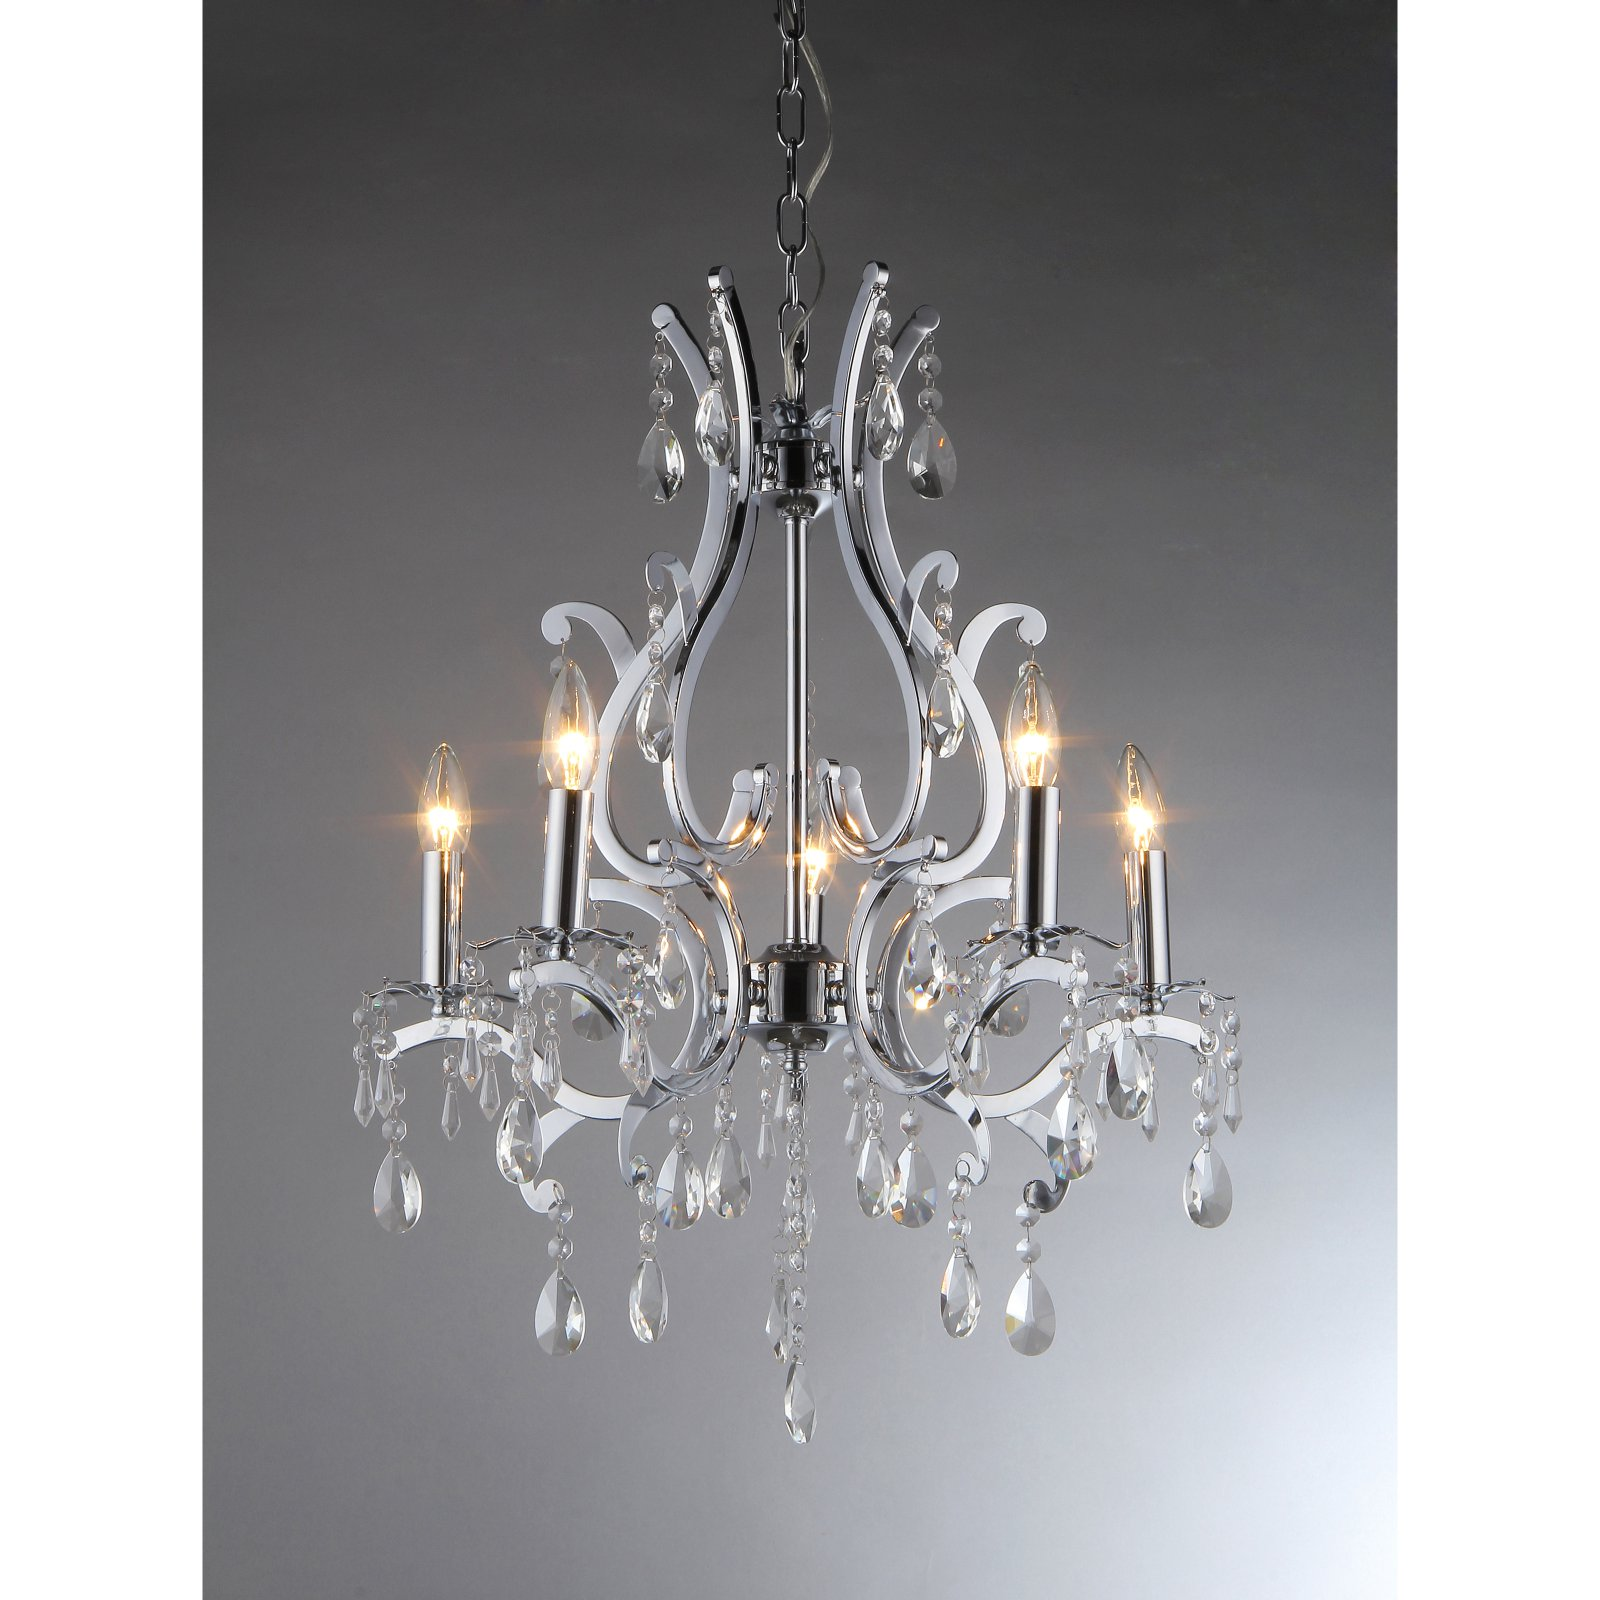 Warehouse of Tiffany Fatima RL1304/5 Crystal Chandelier